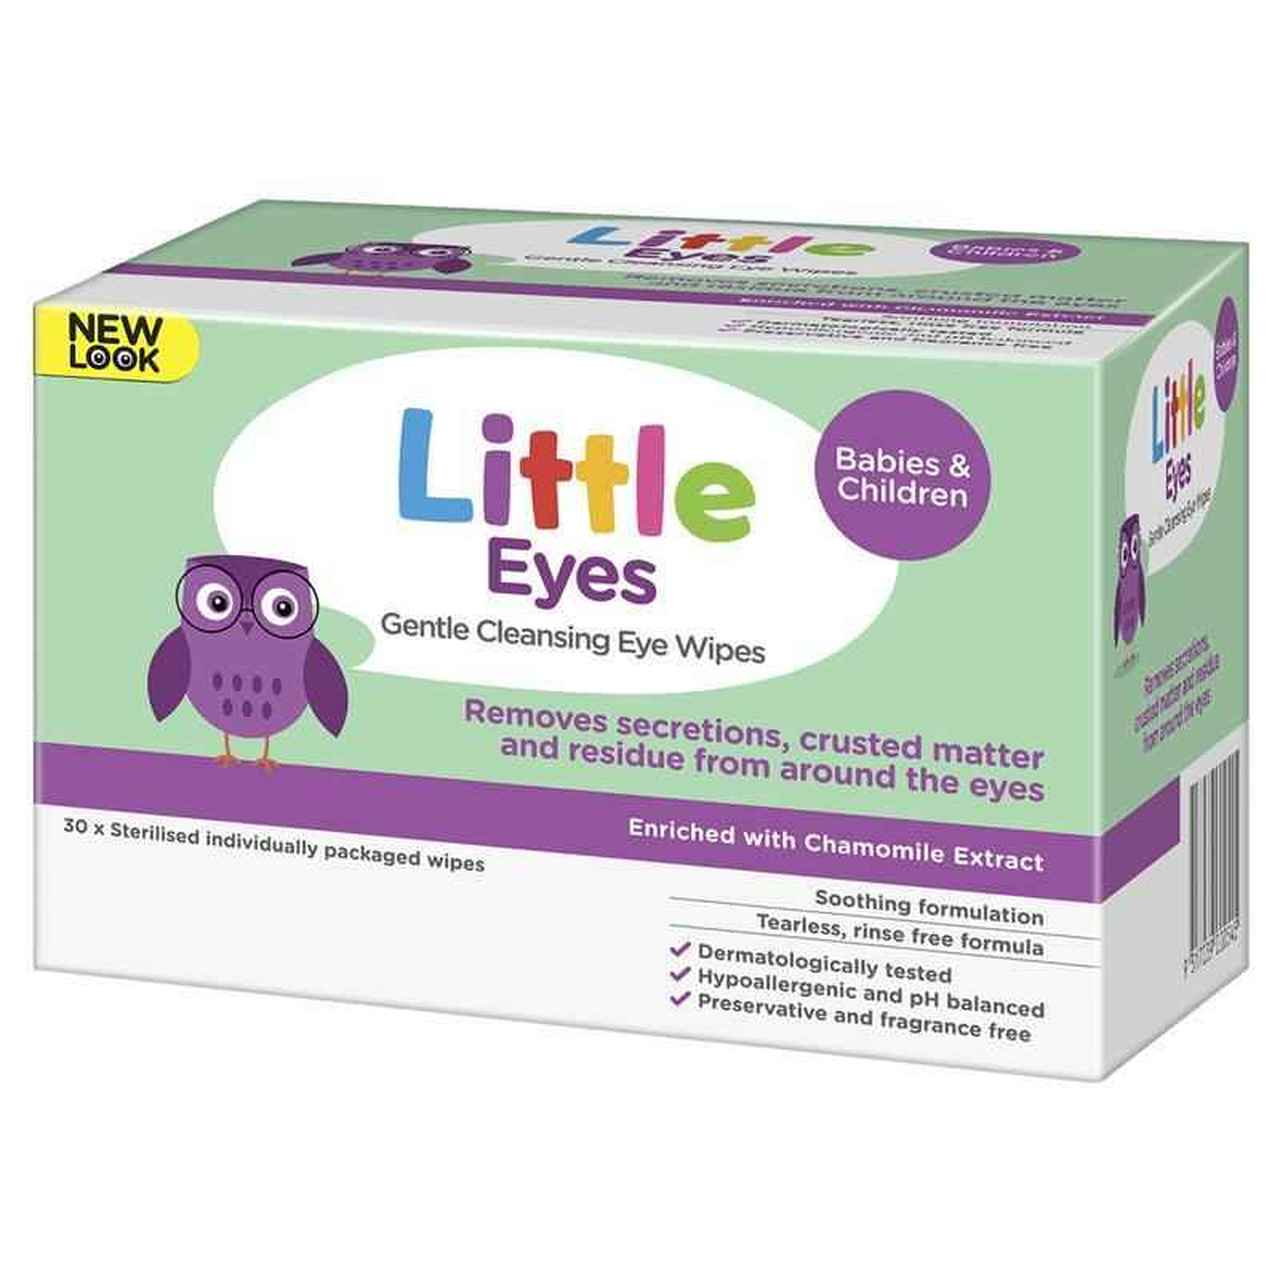 Thumbnail for Little Eyes Cleansing Wipes